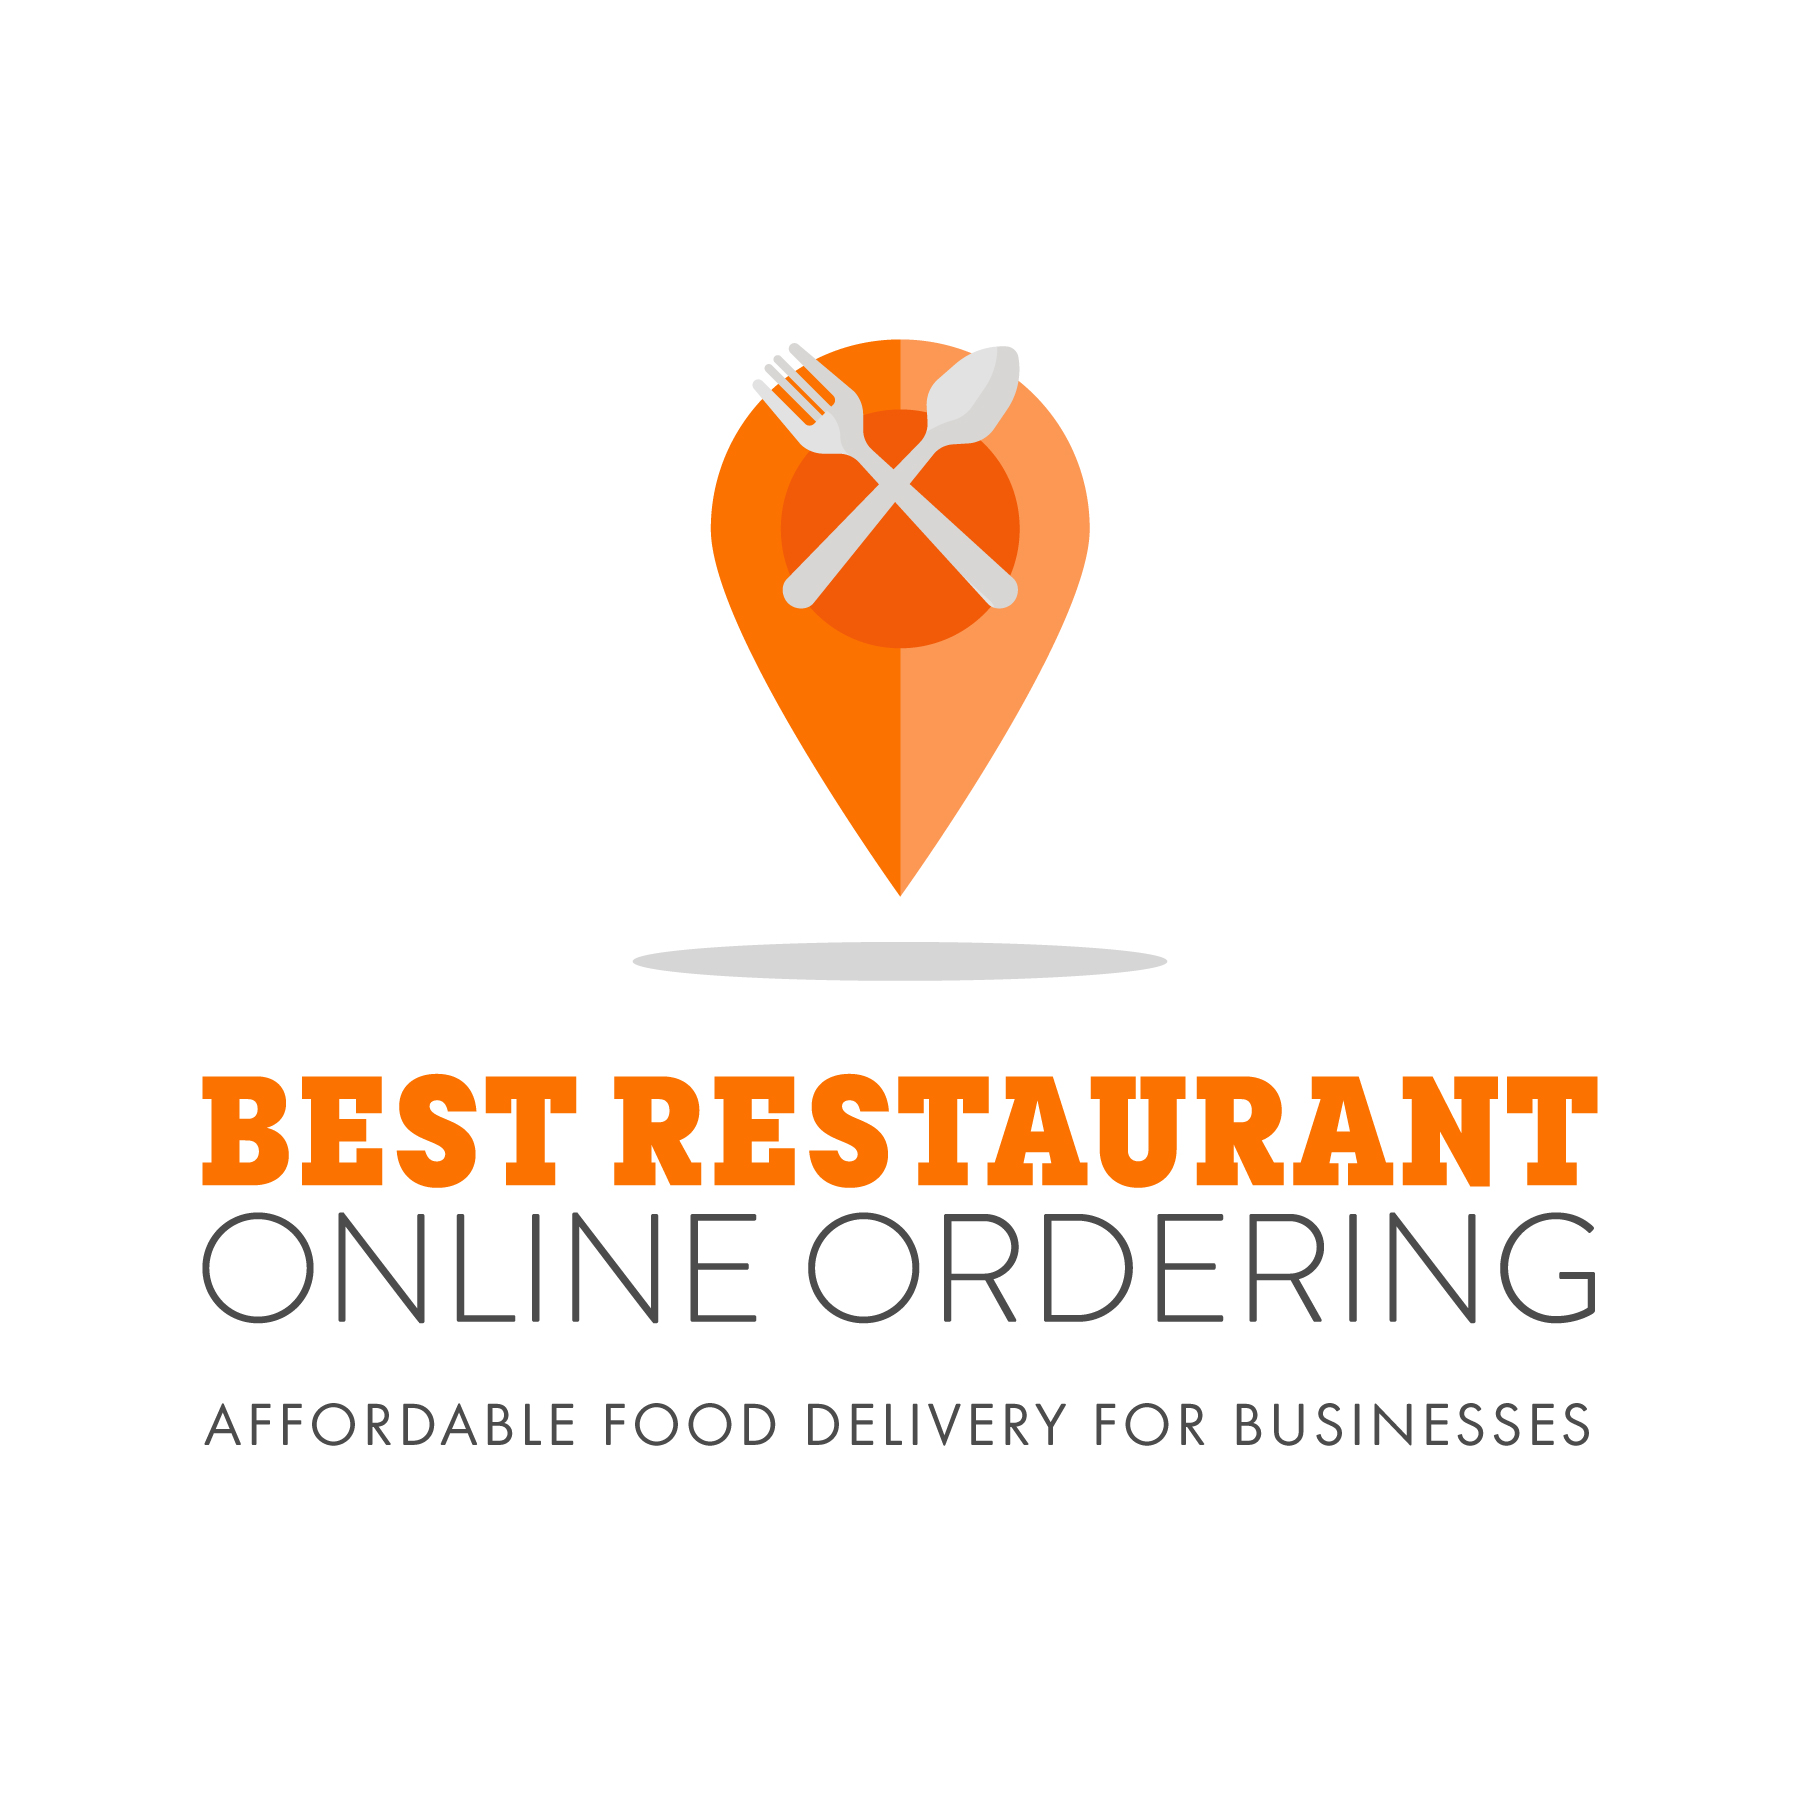 Best Restaurant Online Ordering